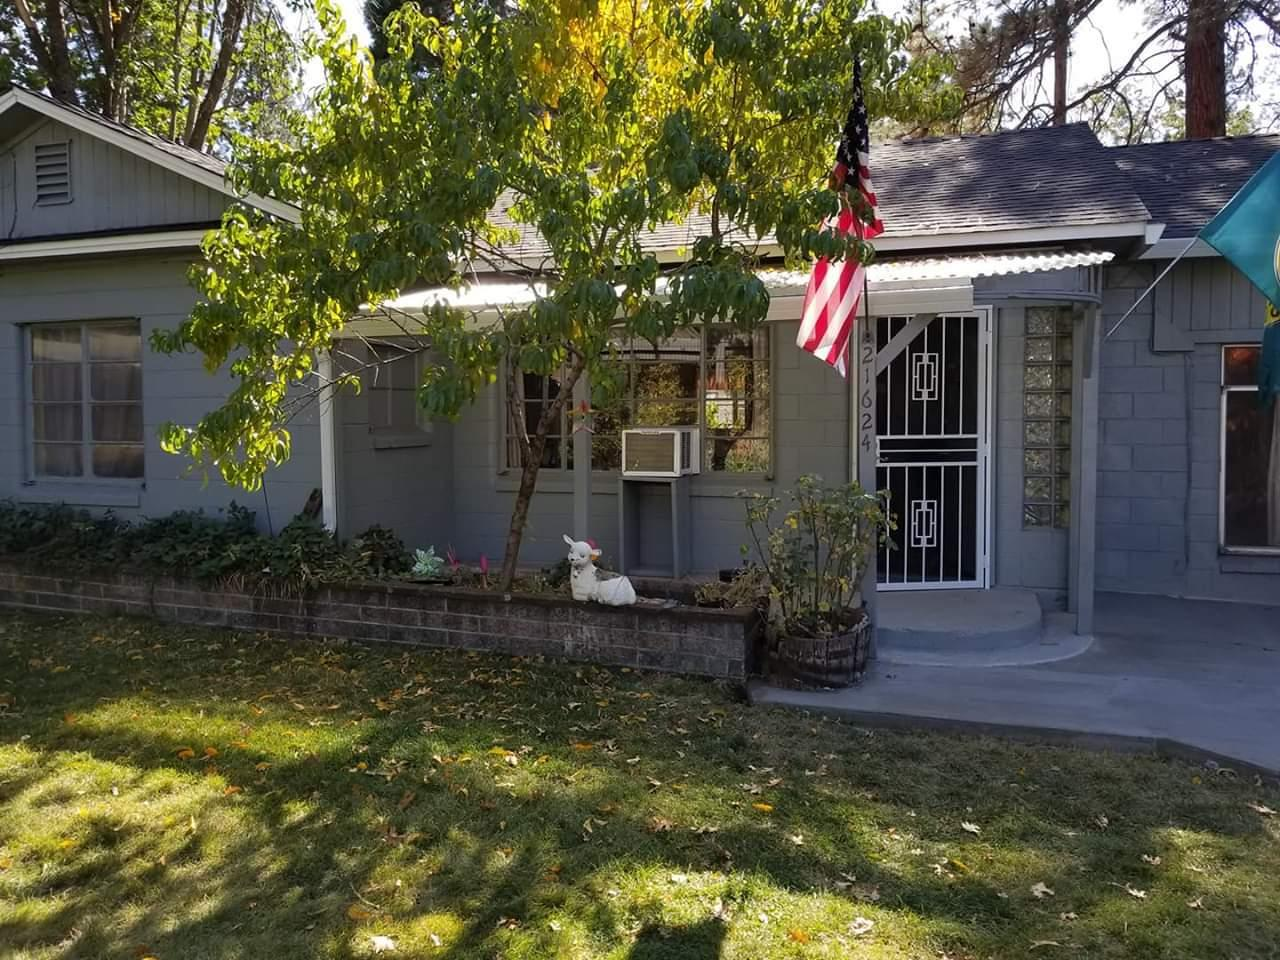 Residential Homes In Shasta County, CA on adobe mobile home, red roof mobile home, renaissance mobile home, fairfield mobile home, suburban mobile home, fairmont mobile home, villager mobile home, hilton mobile home, homestead mobile home, marriott mobile home,